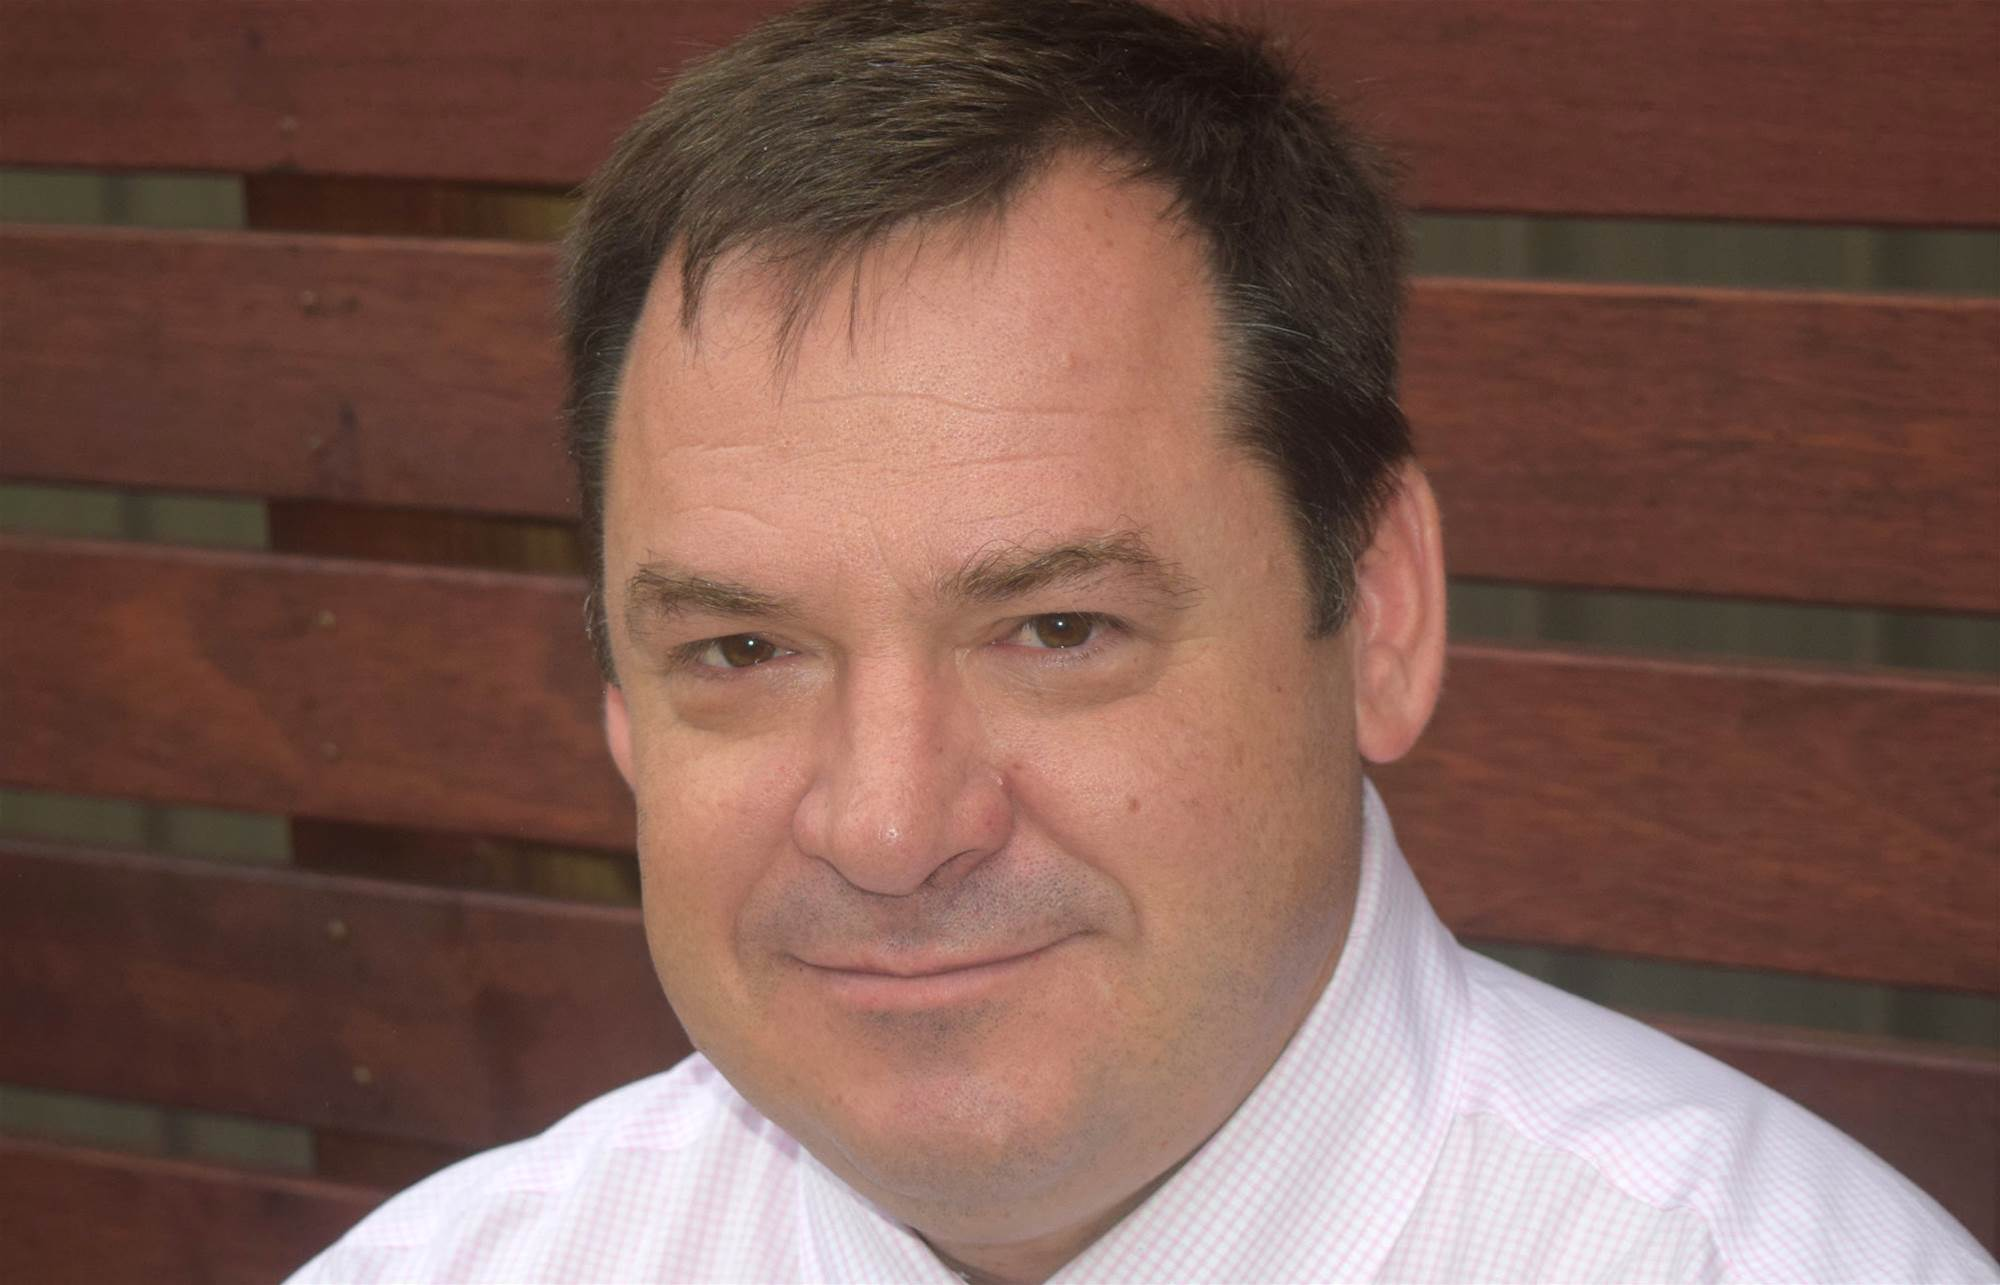 Former DXC vice president Stephen Kowal joins Aussie services conglomerate FTS Group